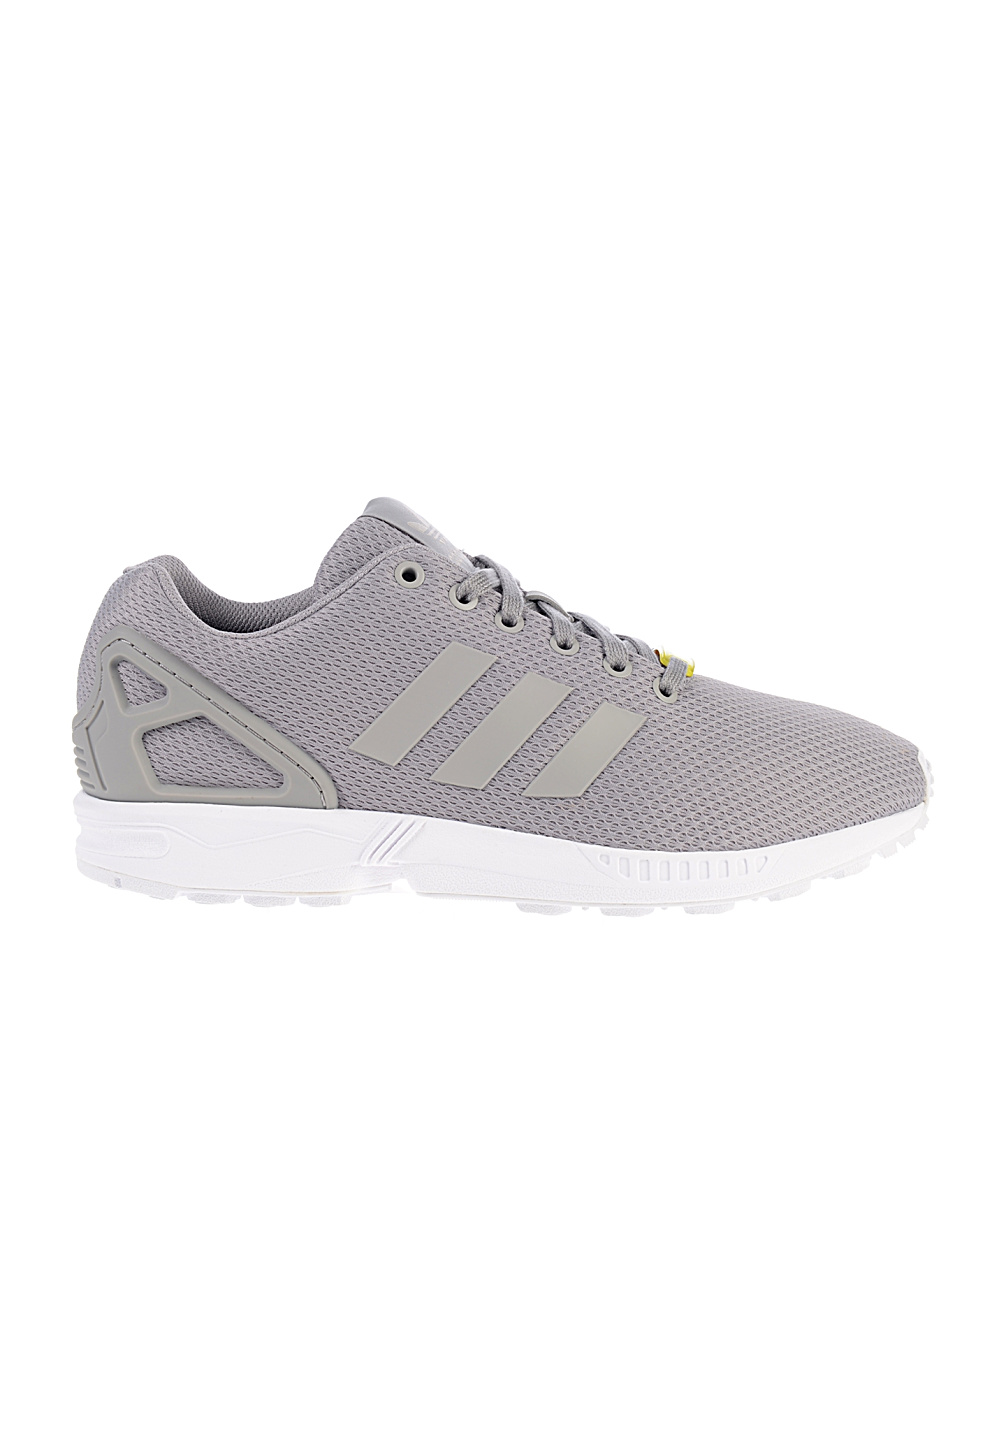 adidas zx grise